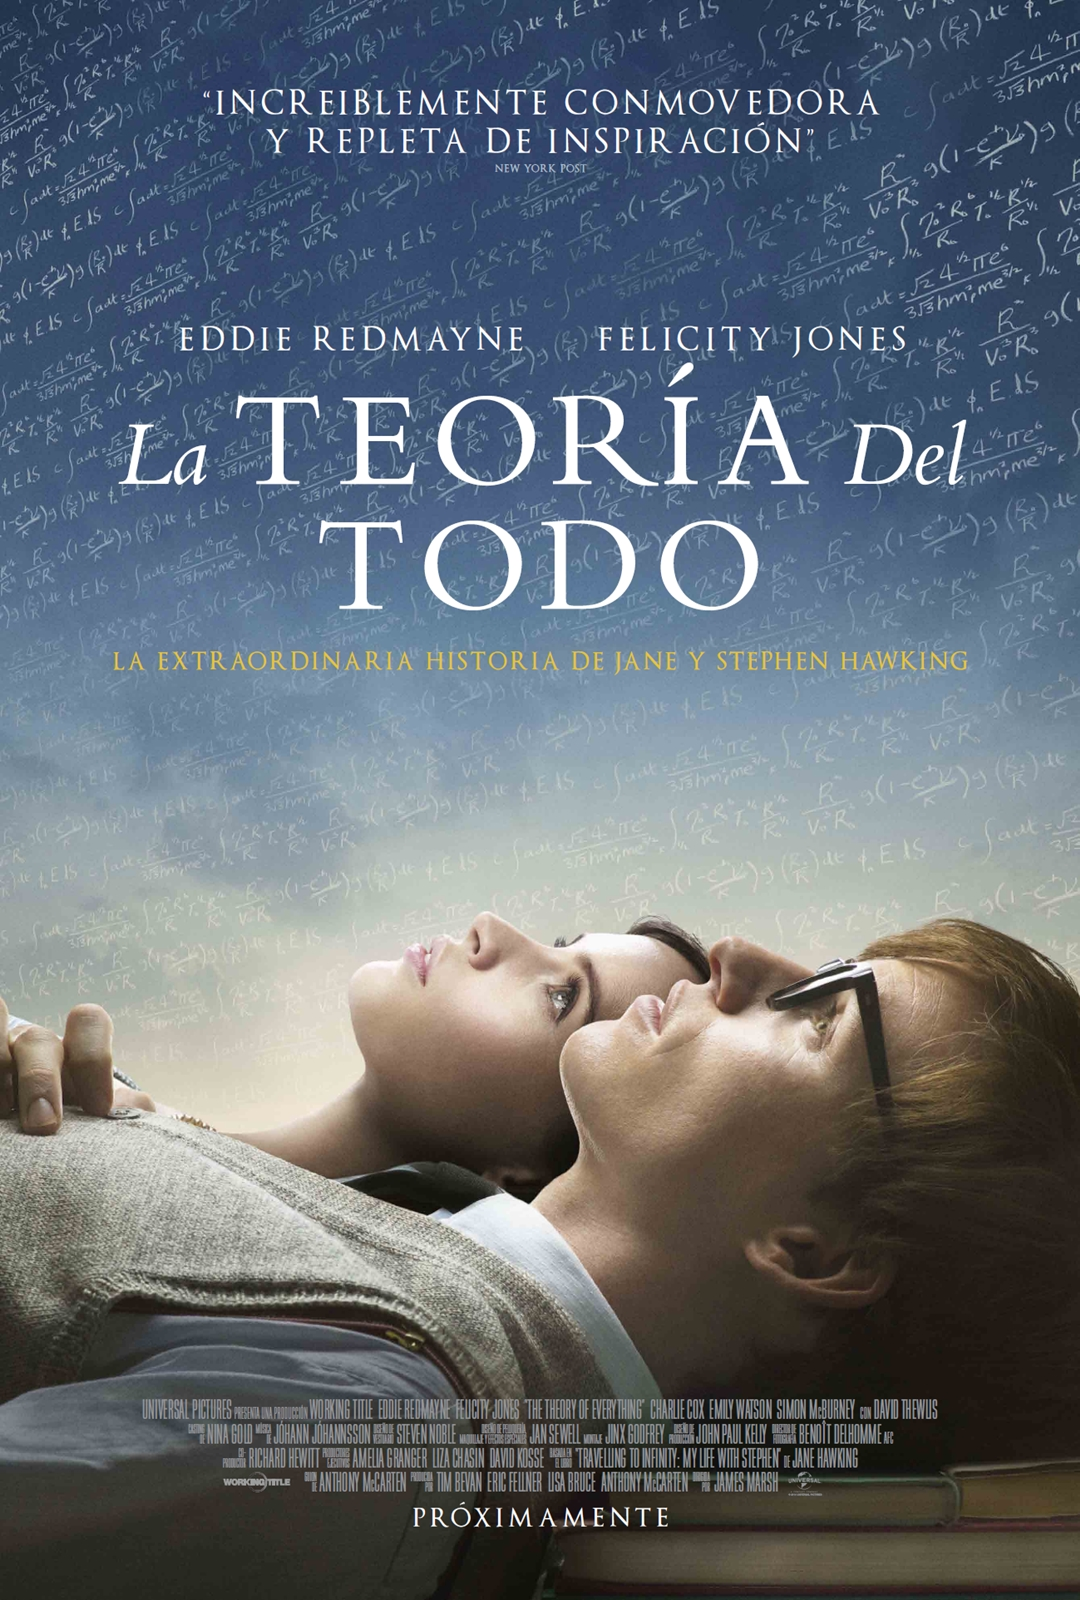 THE THEORY OF EVERYTHING-Official Poster XXLG-03NOVEMBRO2014